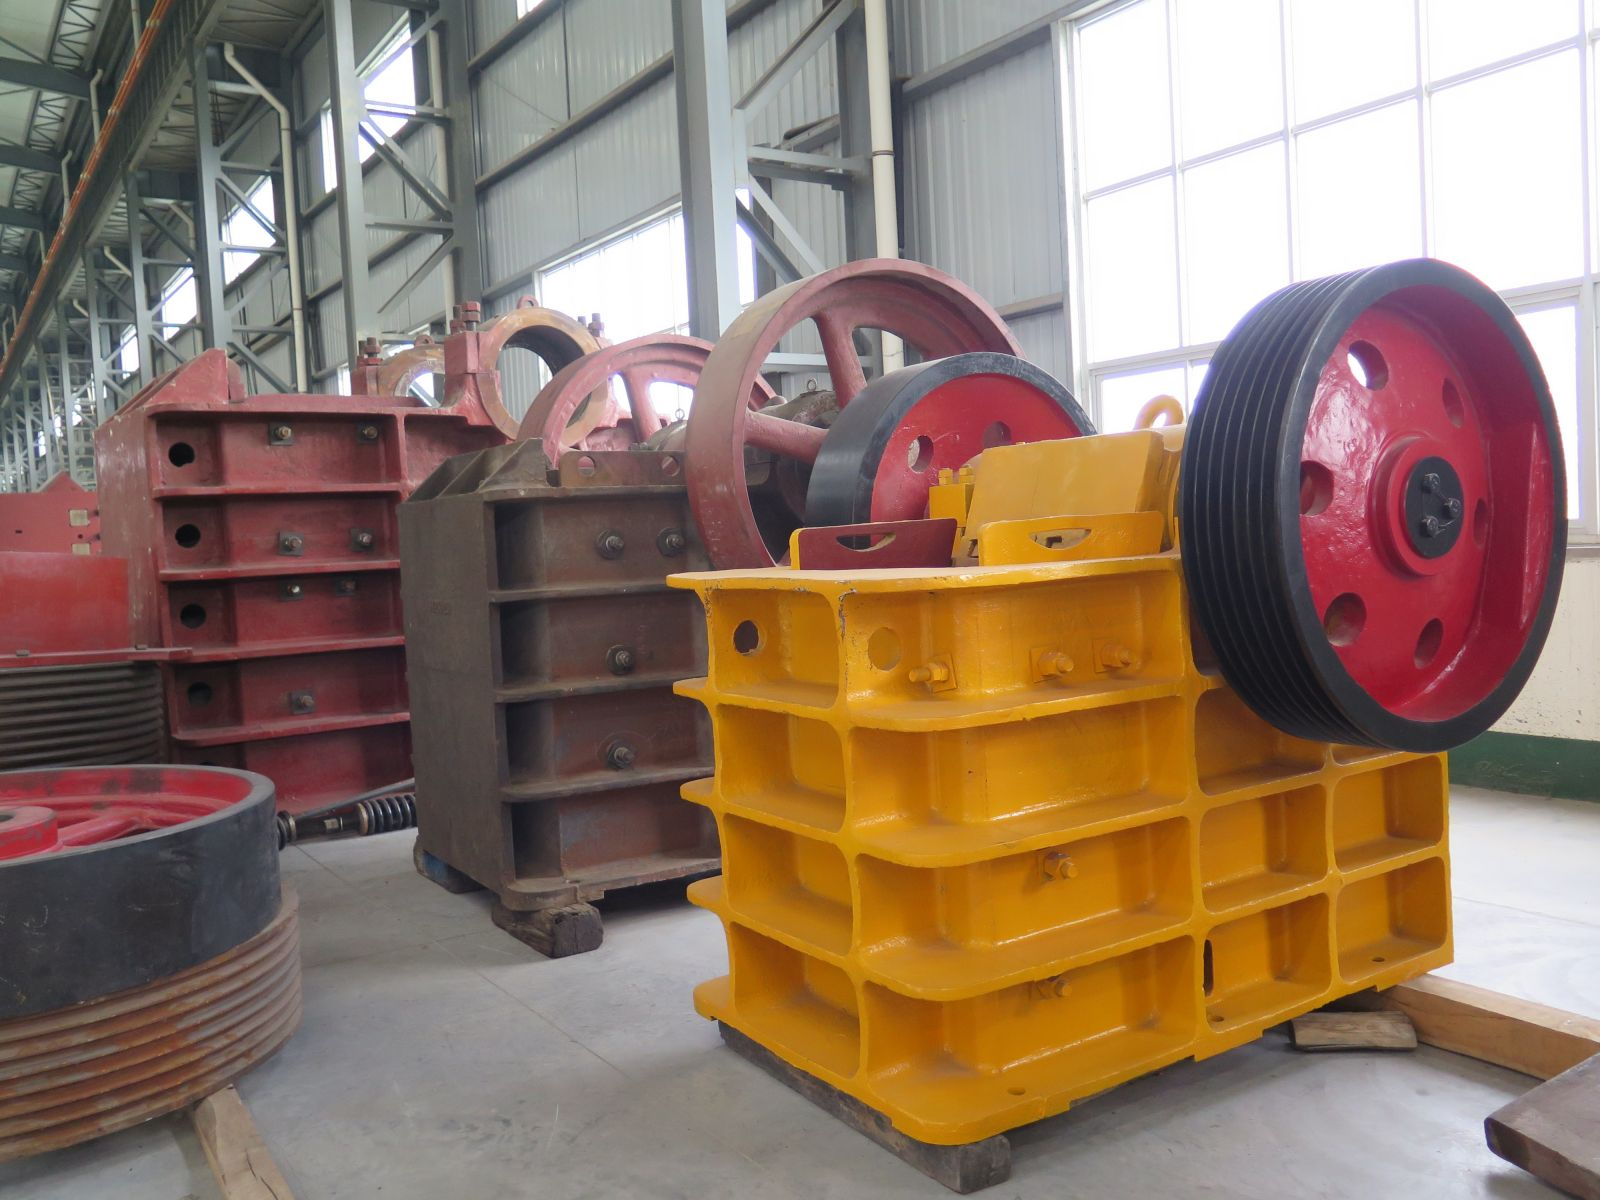 What need to do before jaw crusher begin to work?